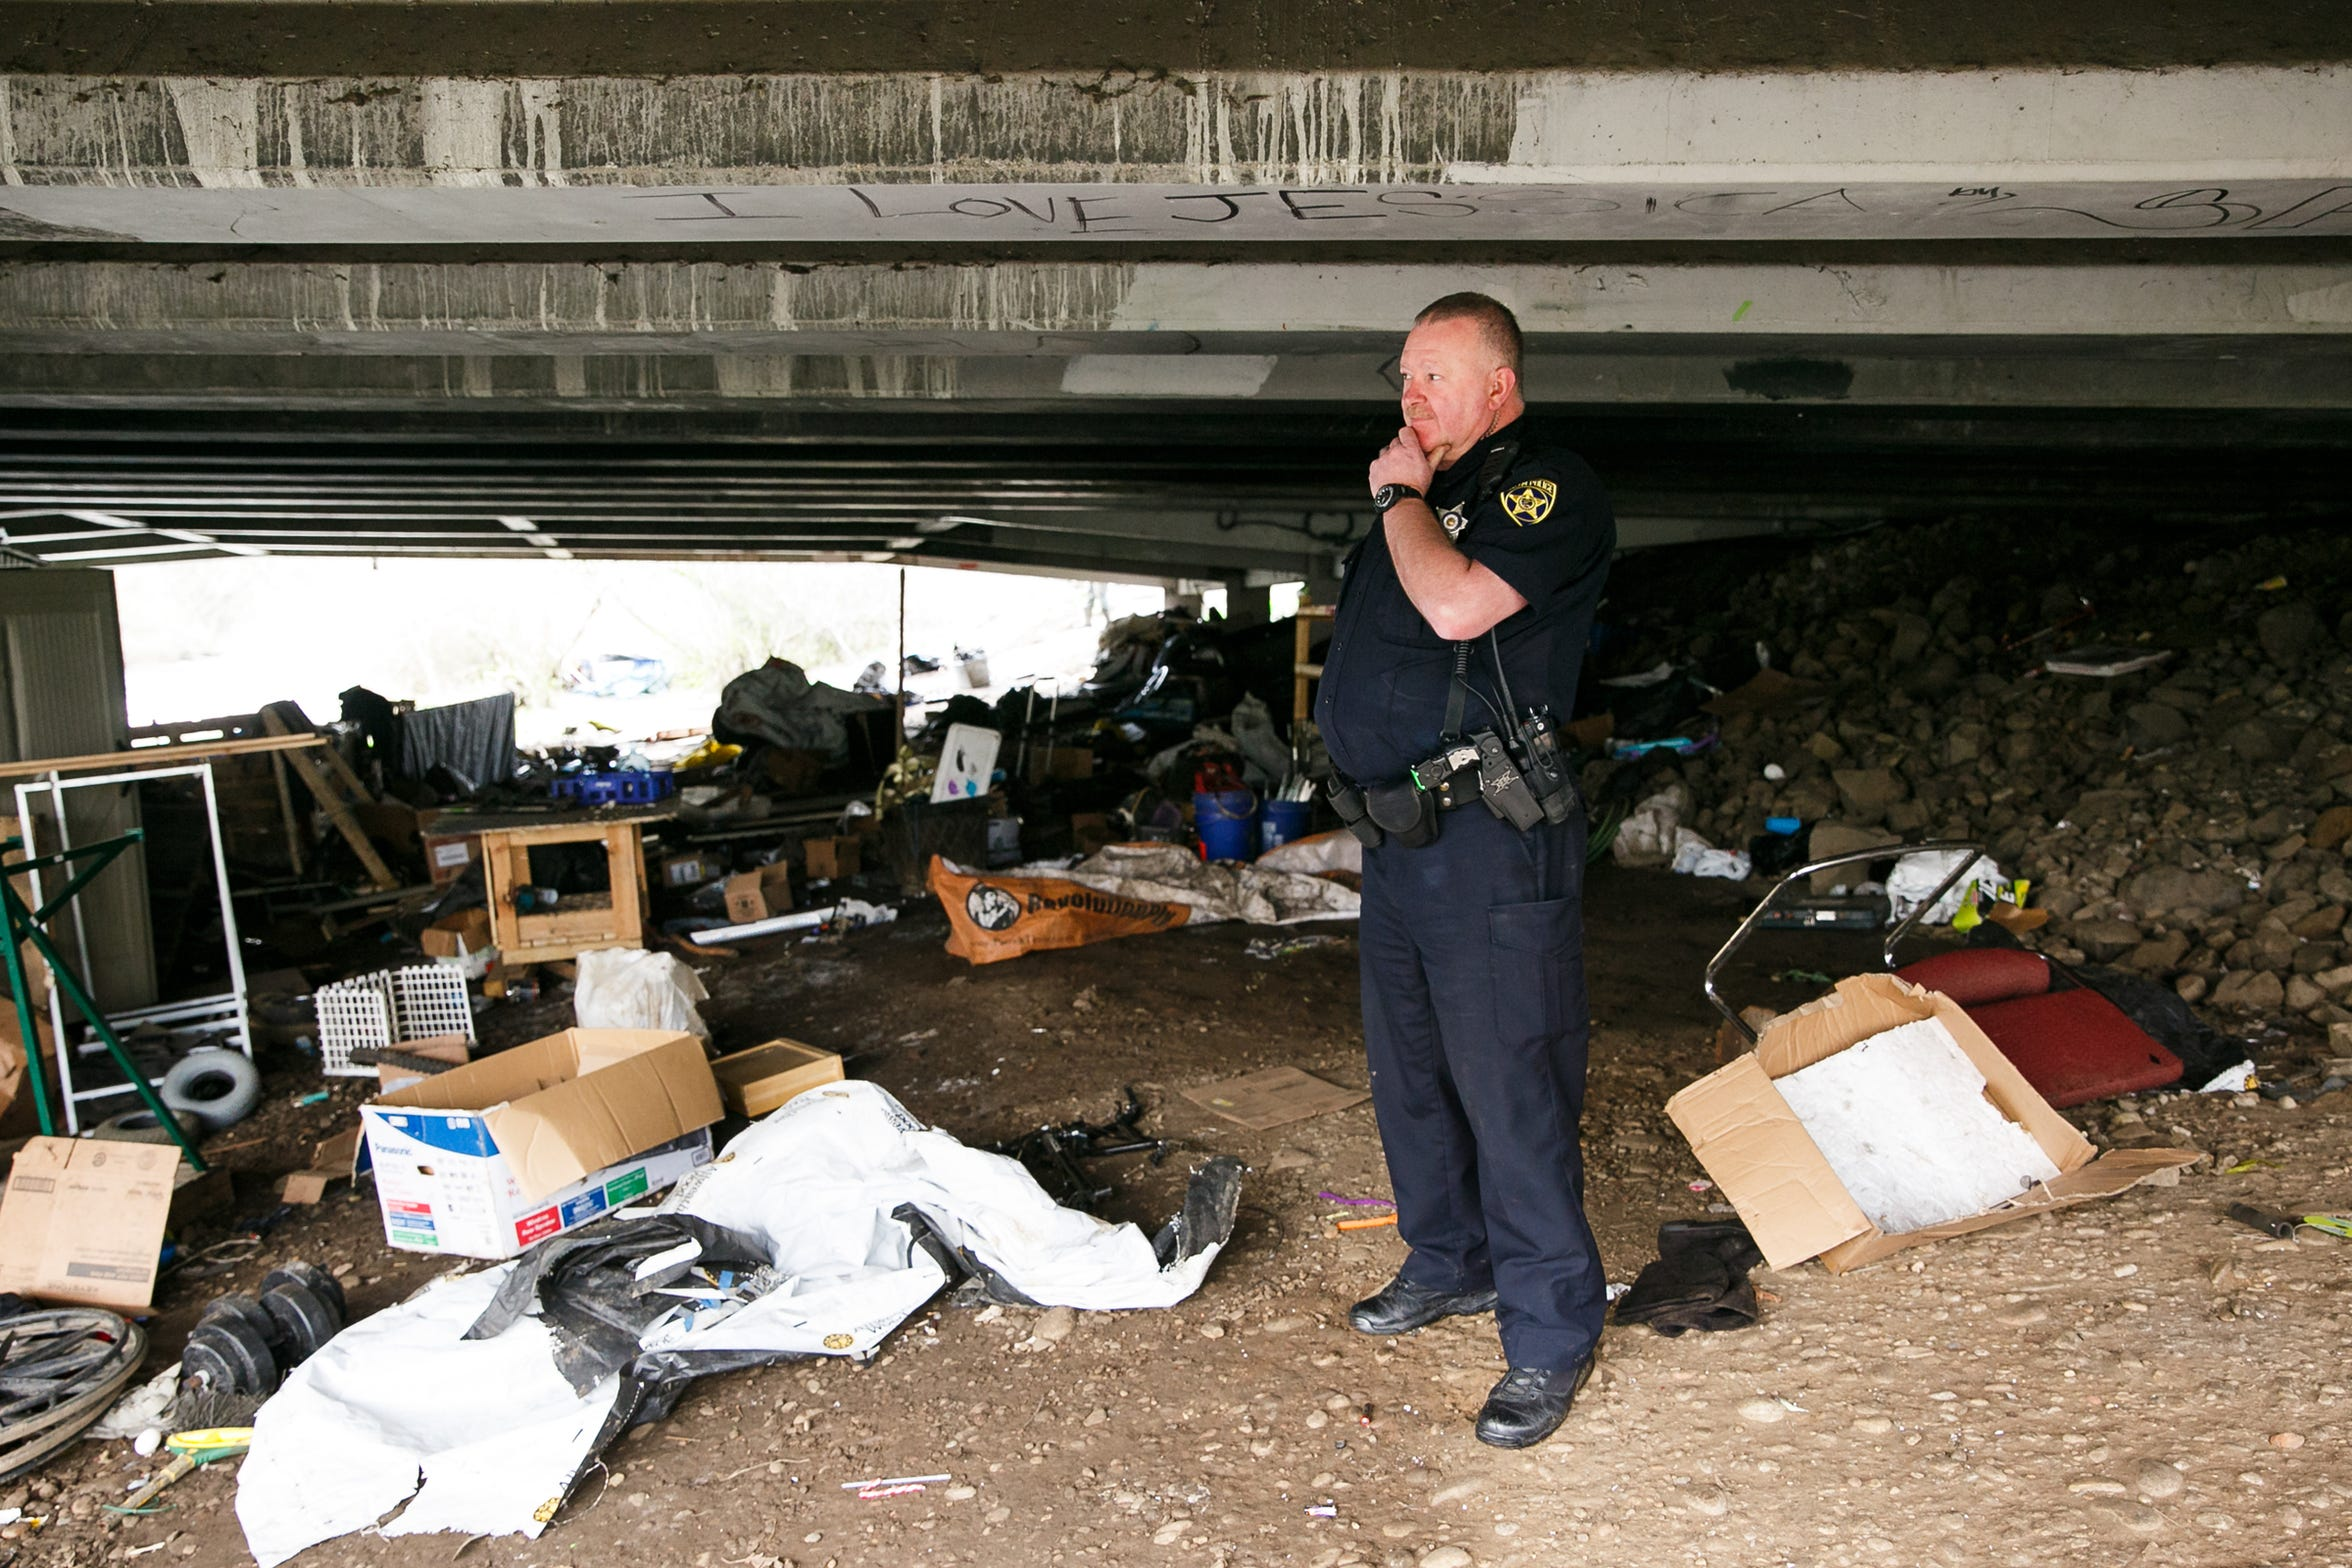 Salem Police Office Bob Owings surveys what's left of a homeless camp under the Highway 22 overpass that crosses Mill Creek near Costco and Lowe's Jan. 29, 2018.